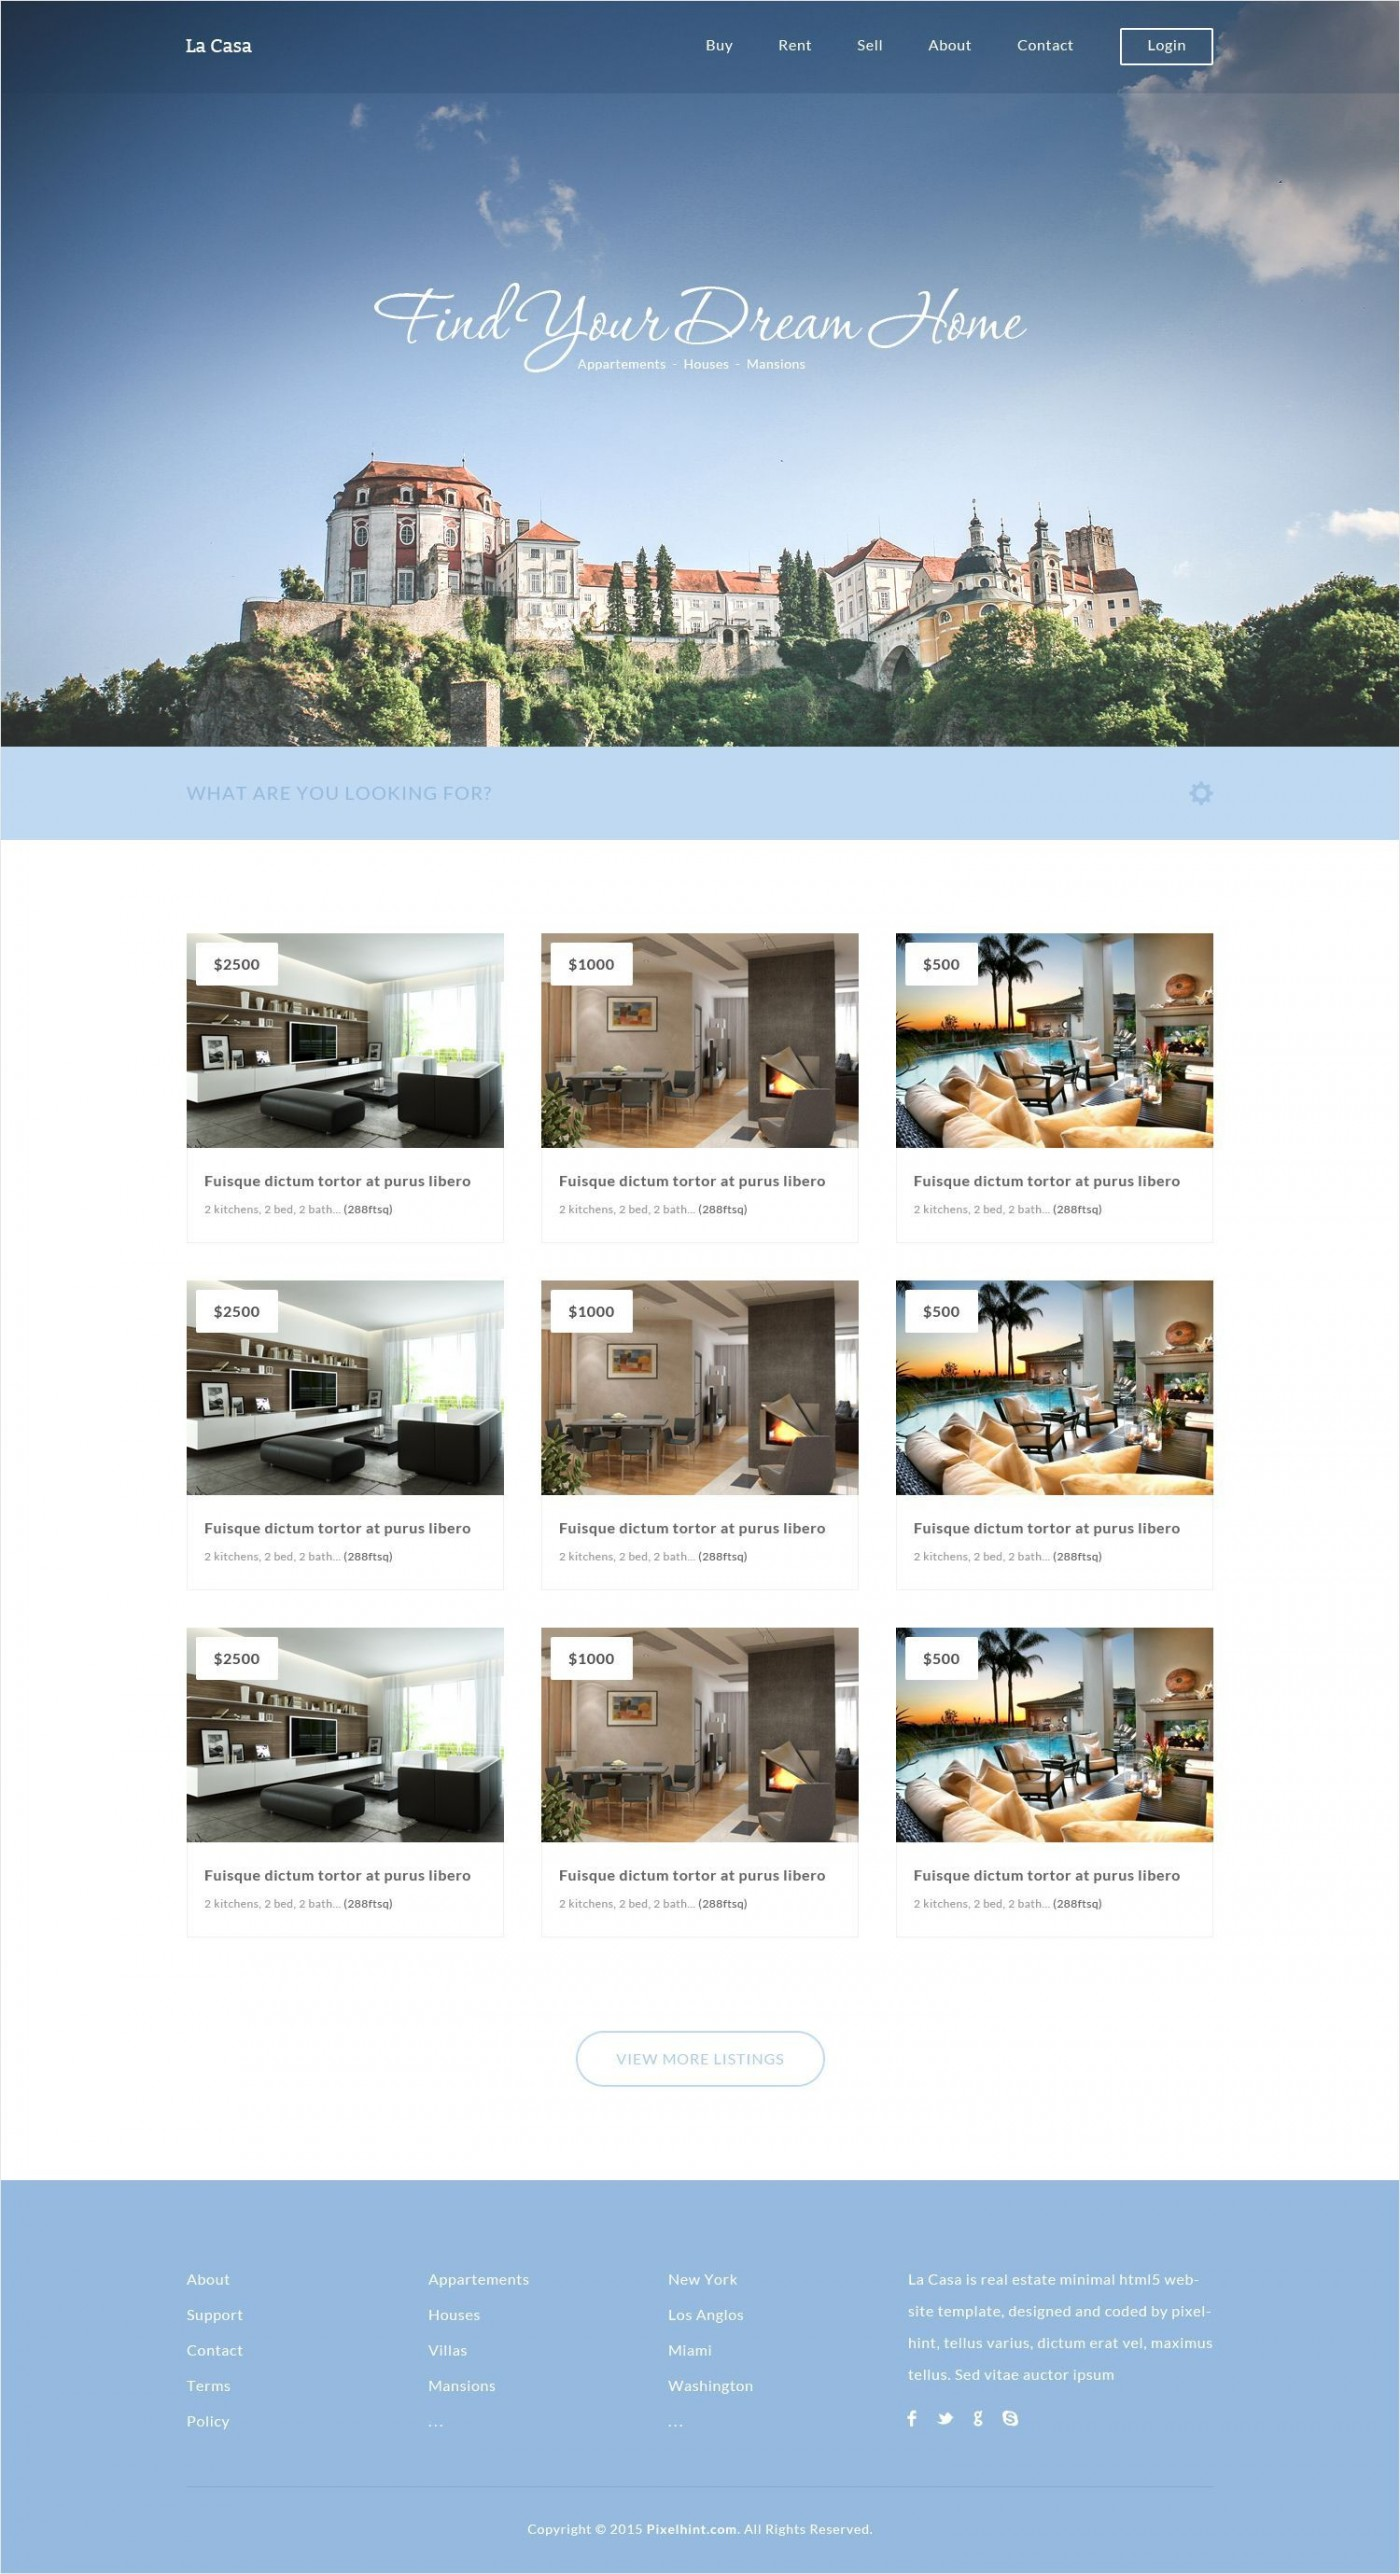 000 Simple Free Real Estate Template Idea  Website Download Bootstrap 41400